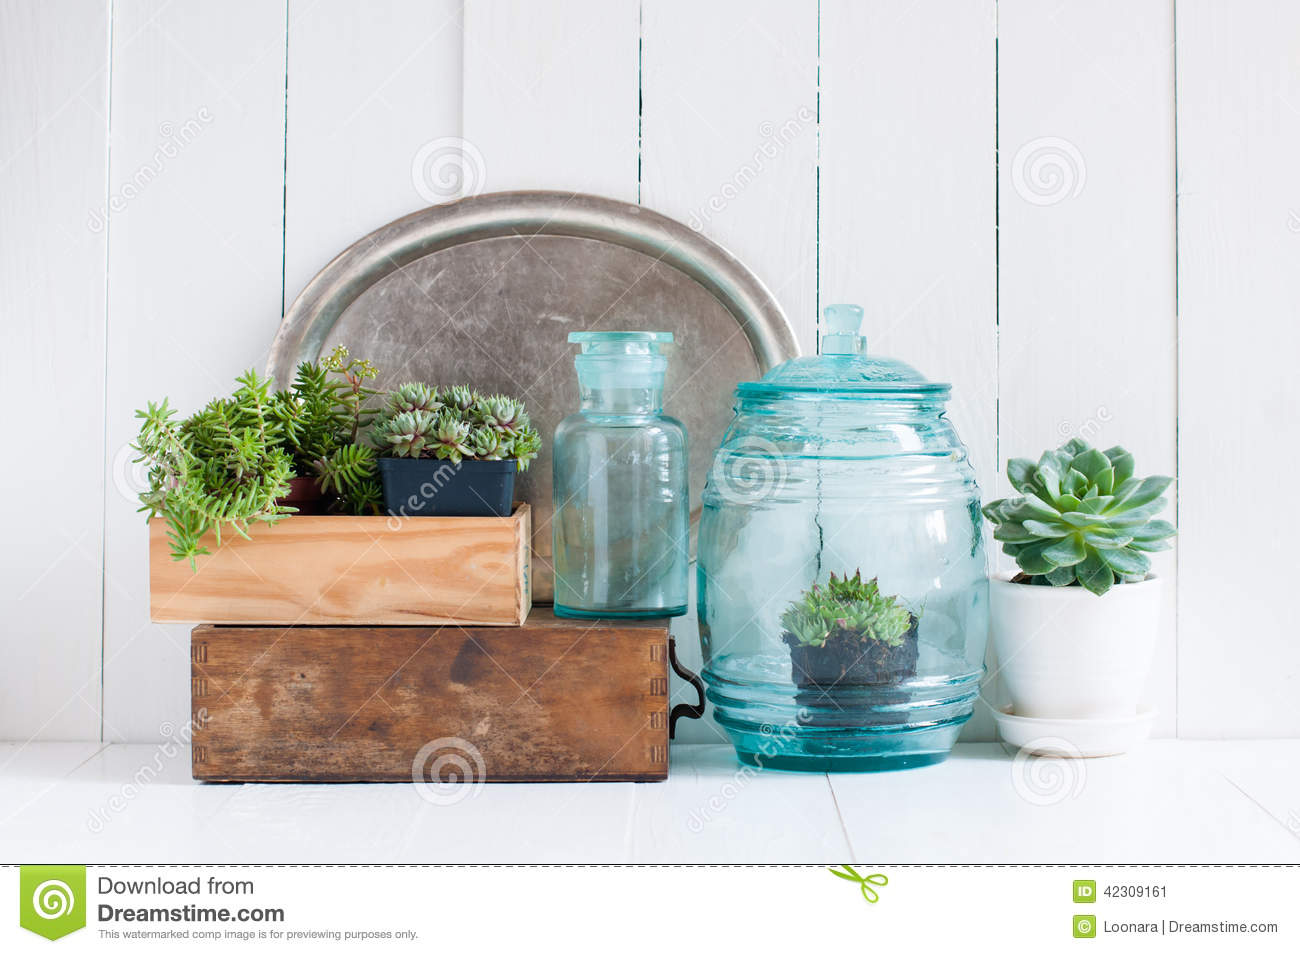 Vintage home decor stock photo image 42309161 for Glass home decor